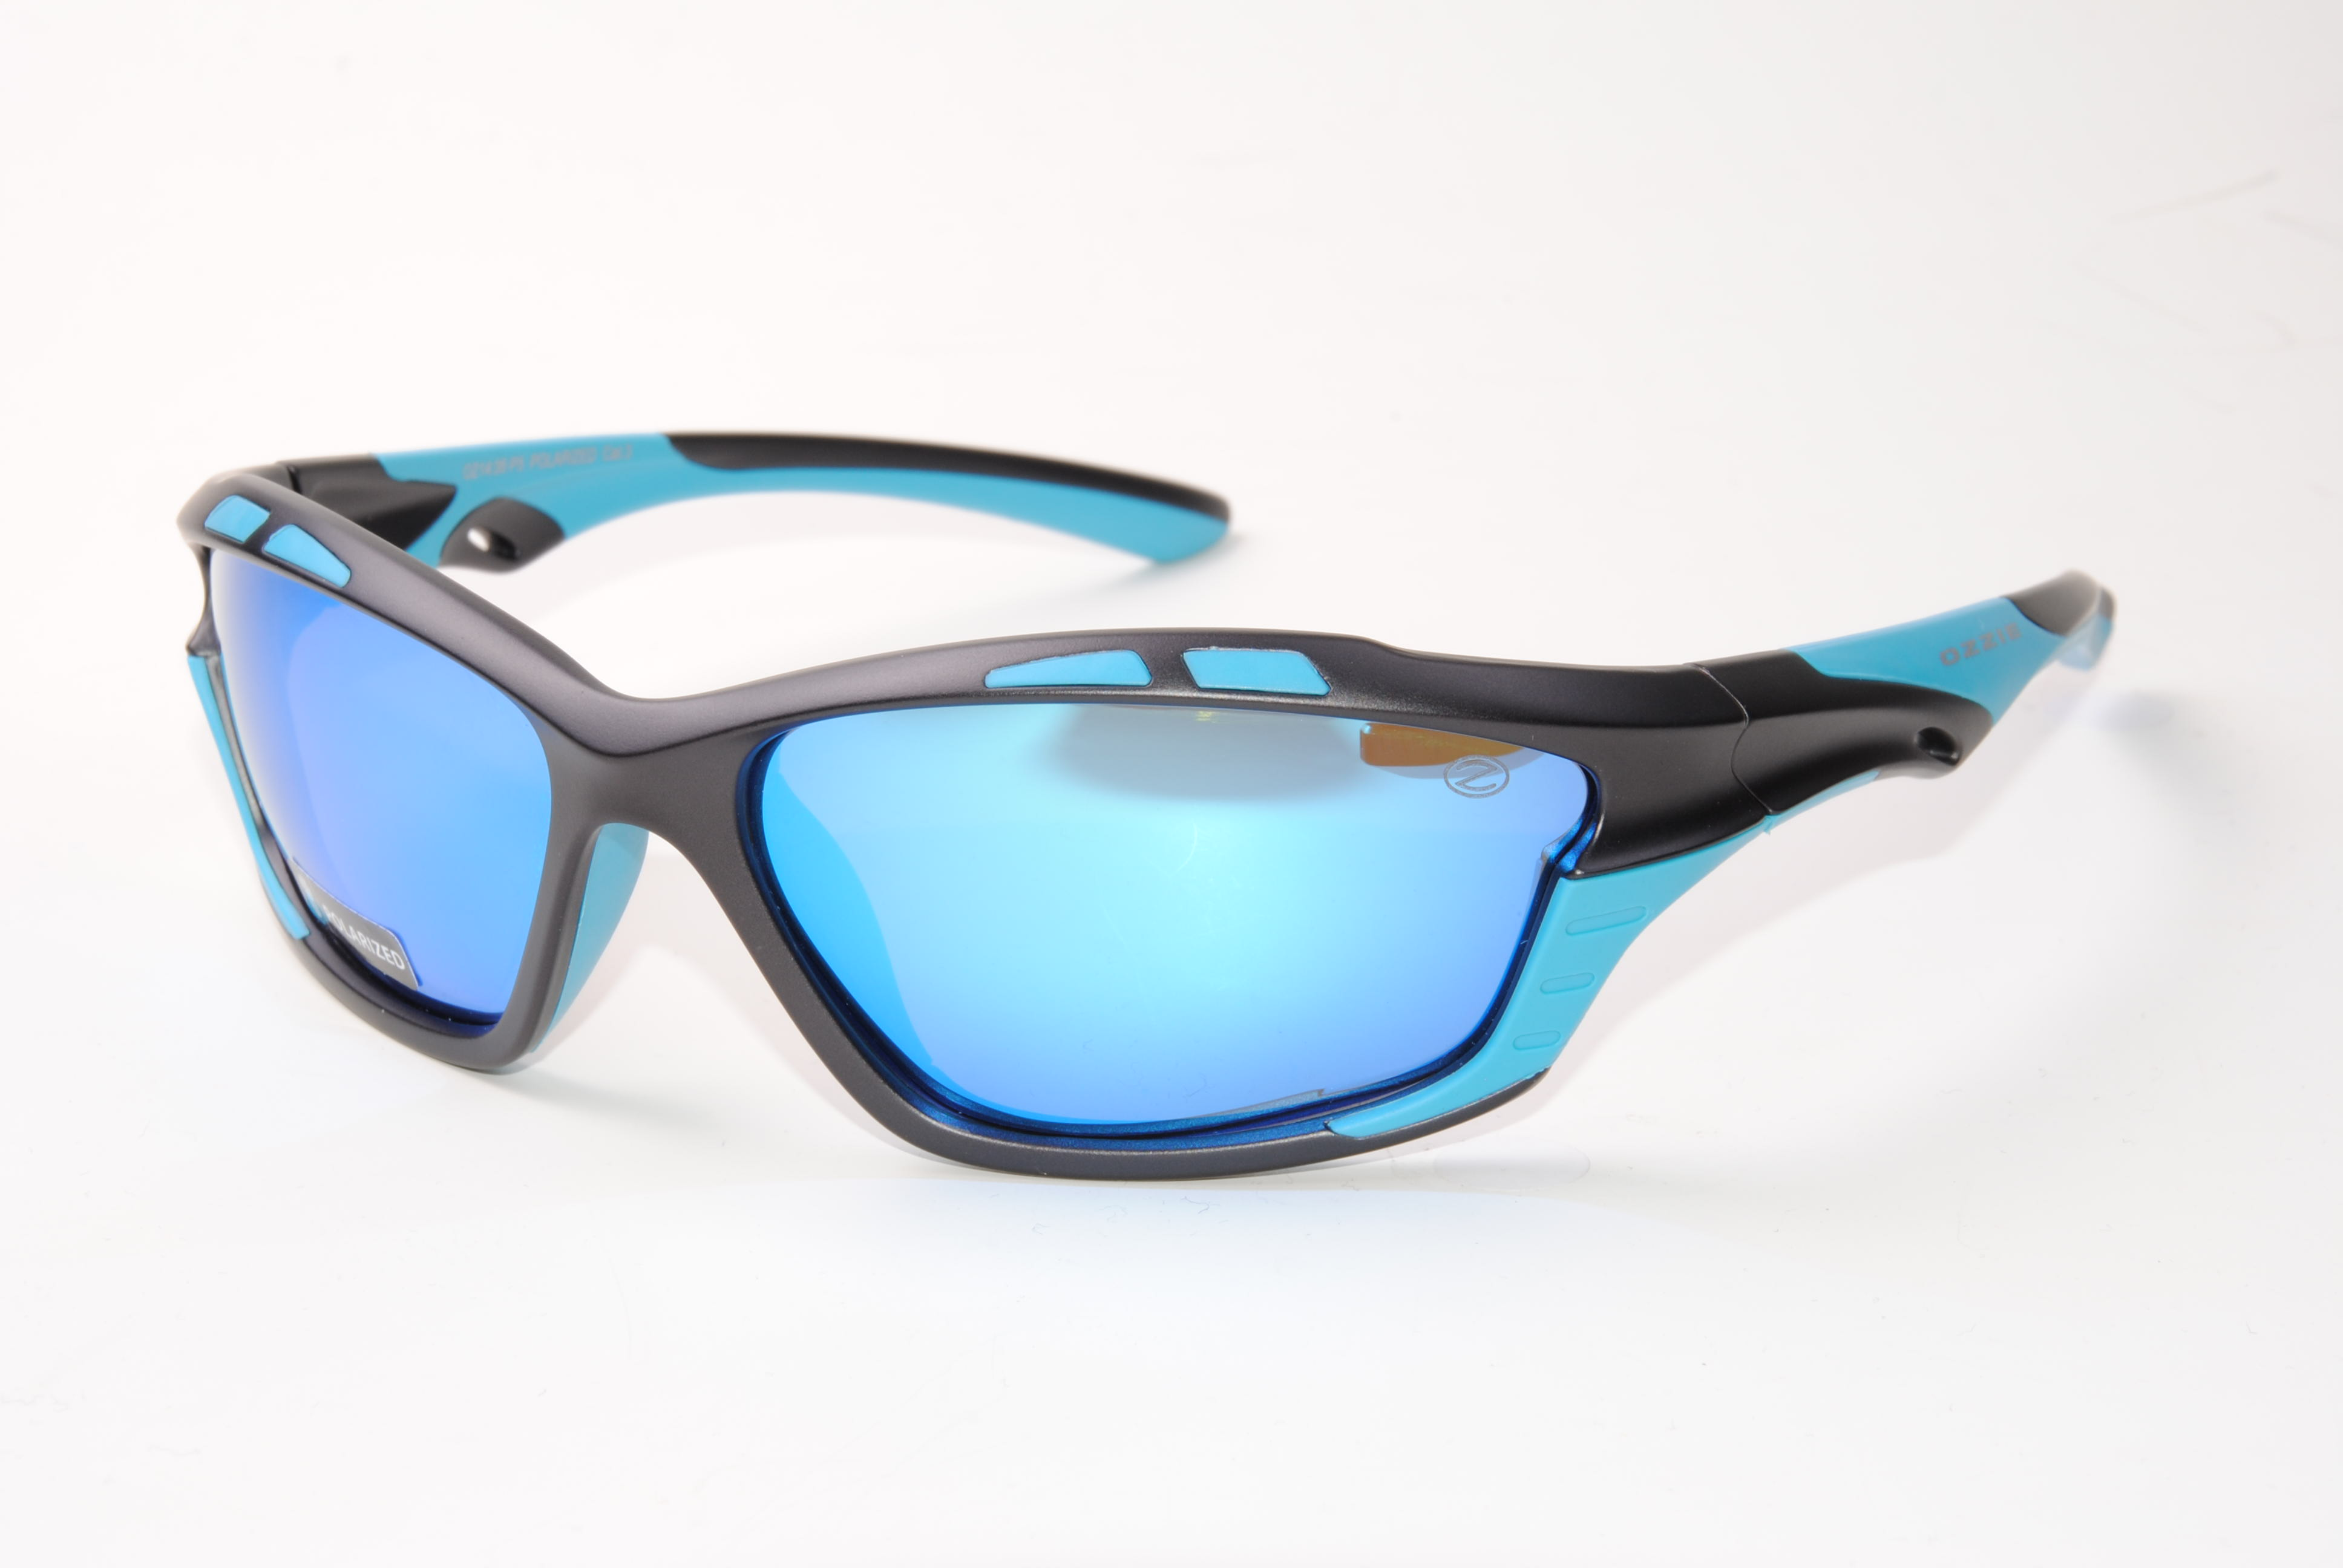 Ozzie 14 36 P5 polarized